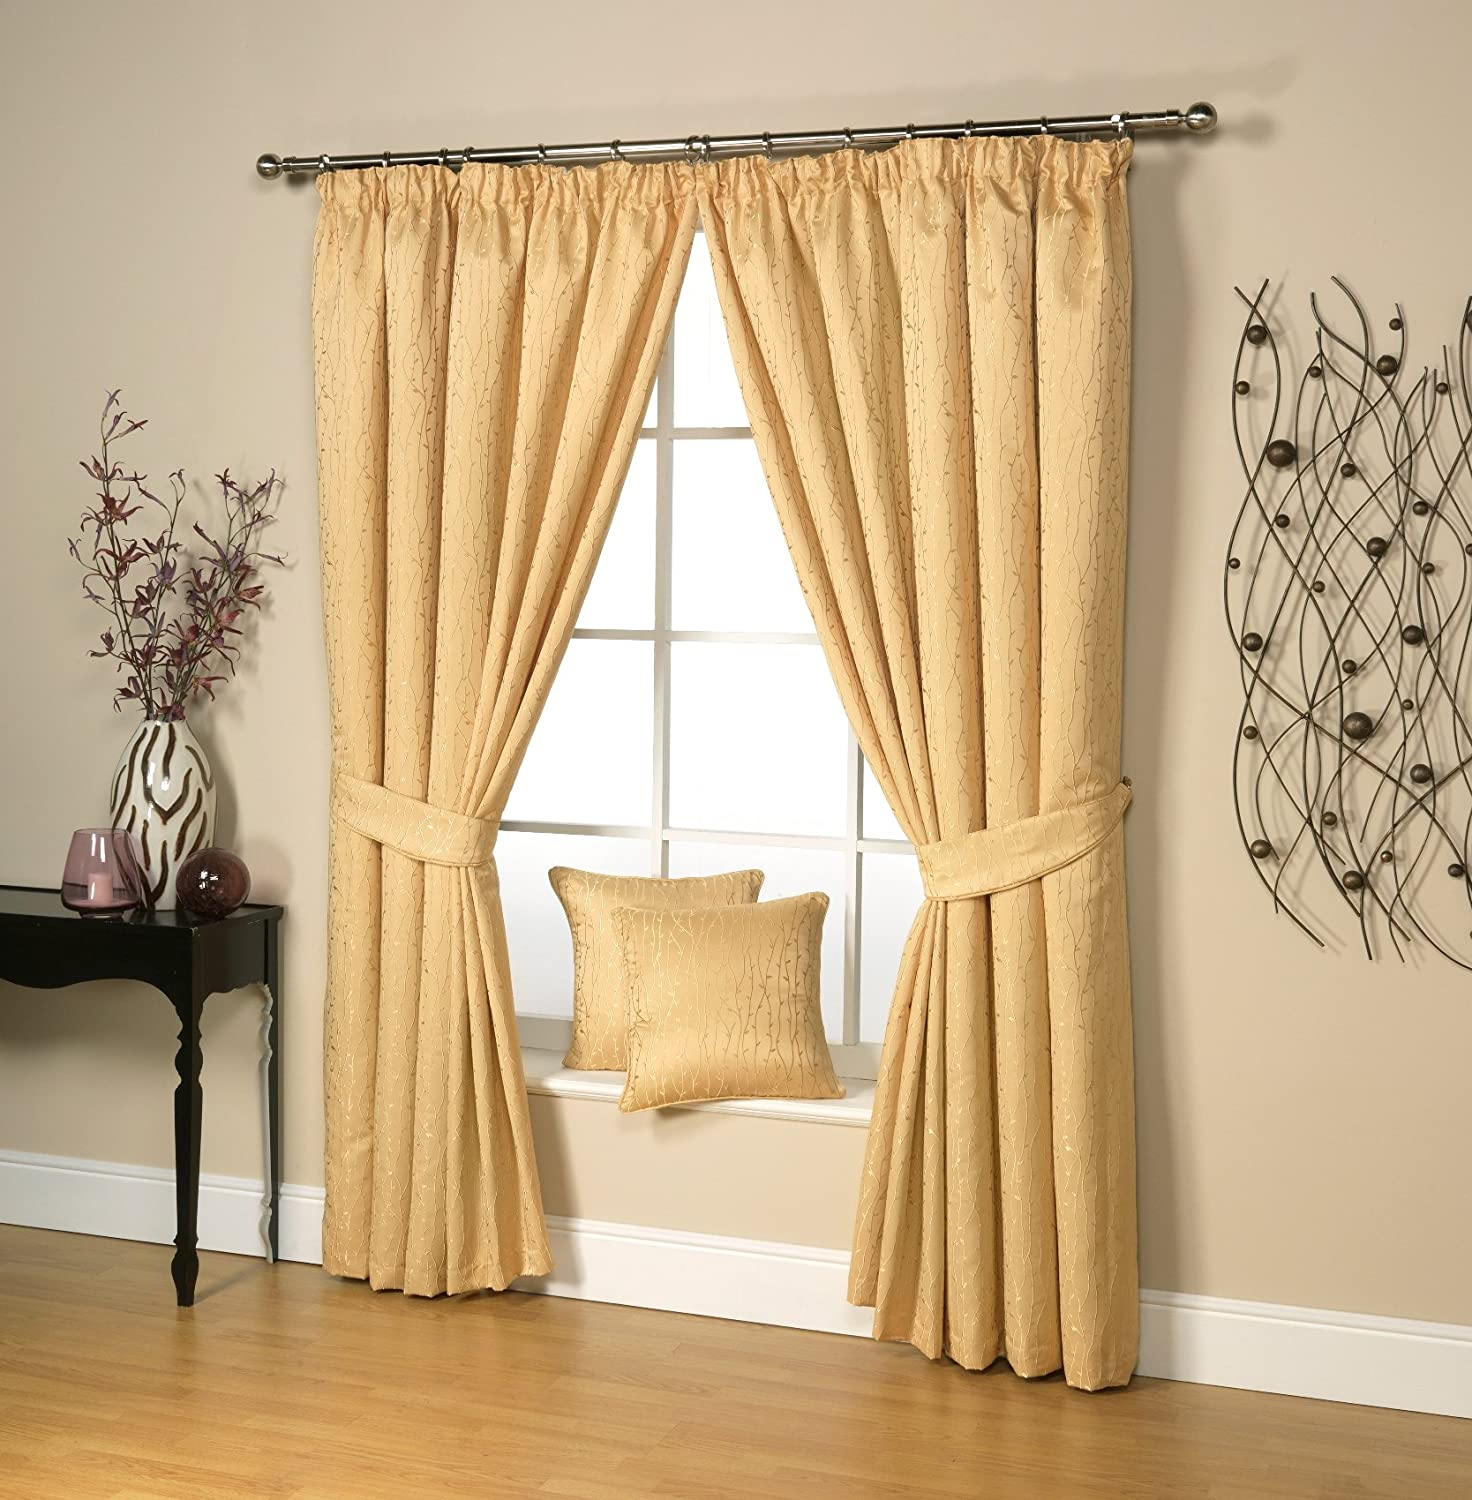 cheap online custom curtain product harlow view made blockout curtains ready categories collection